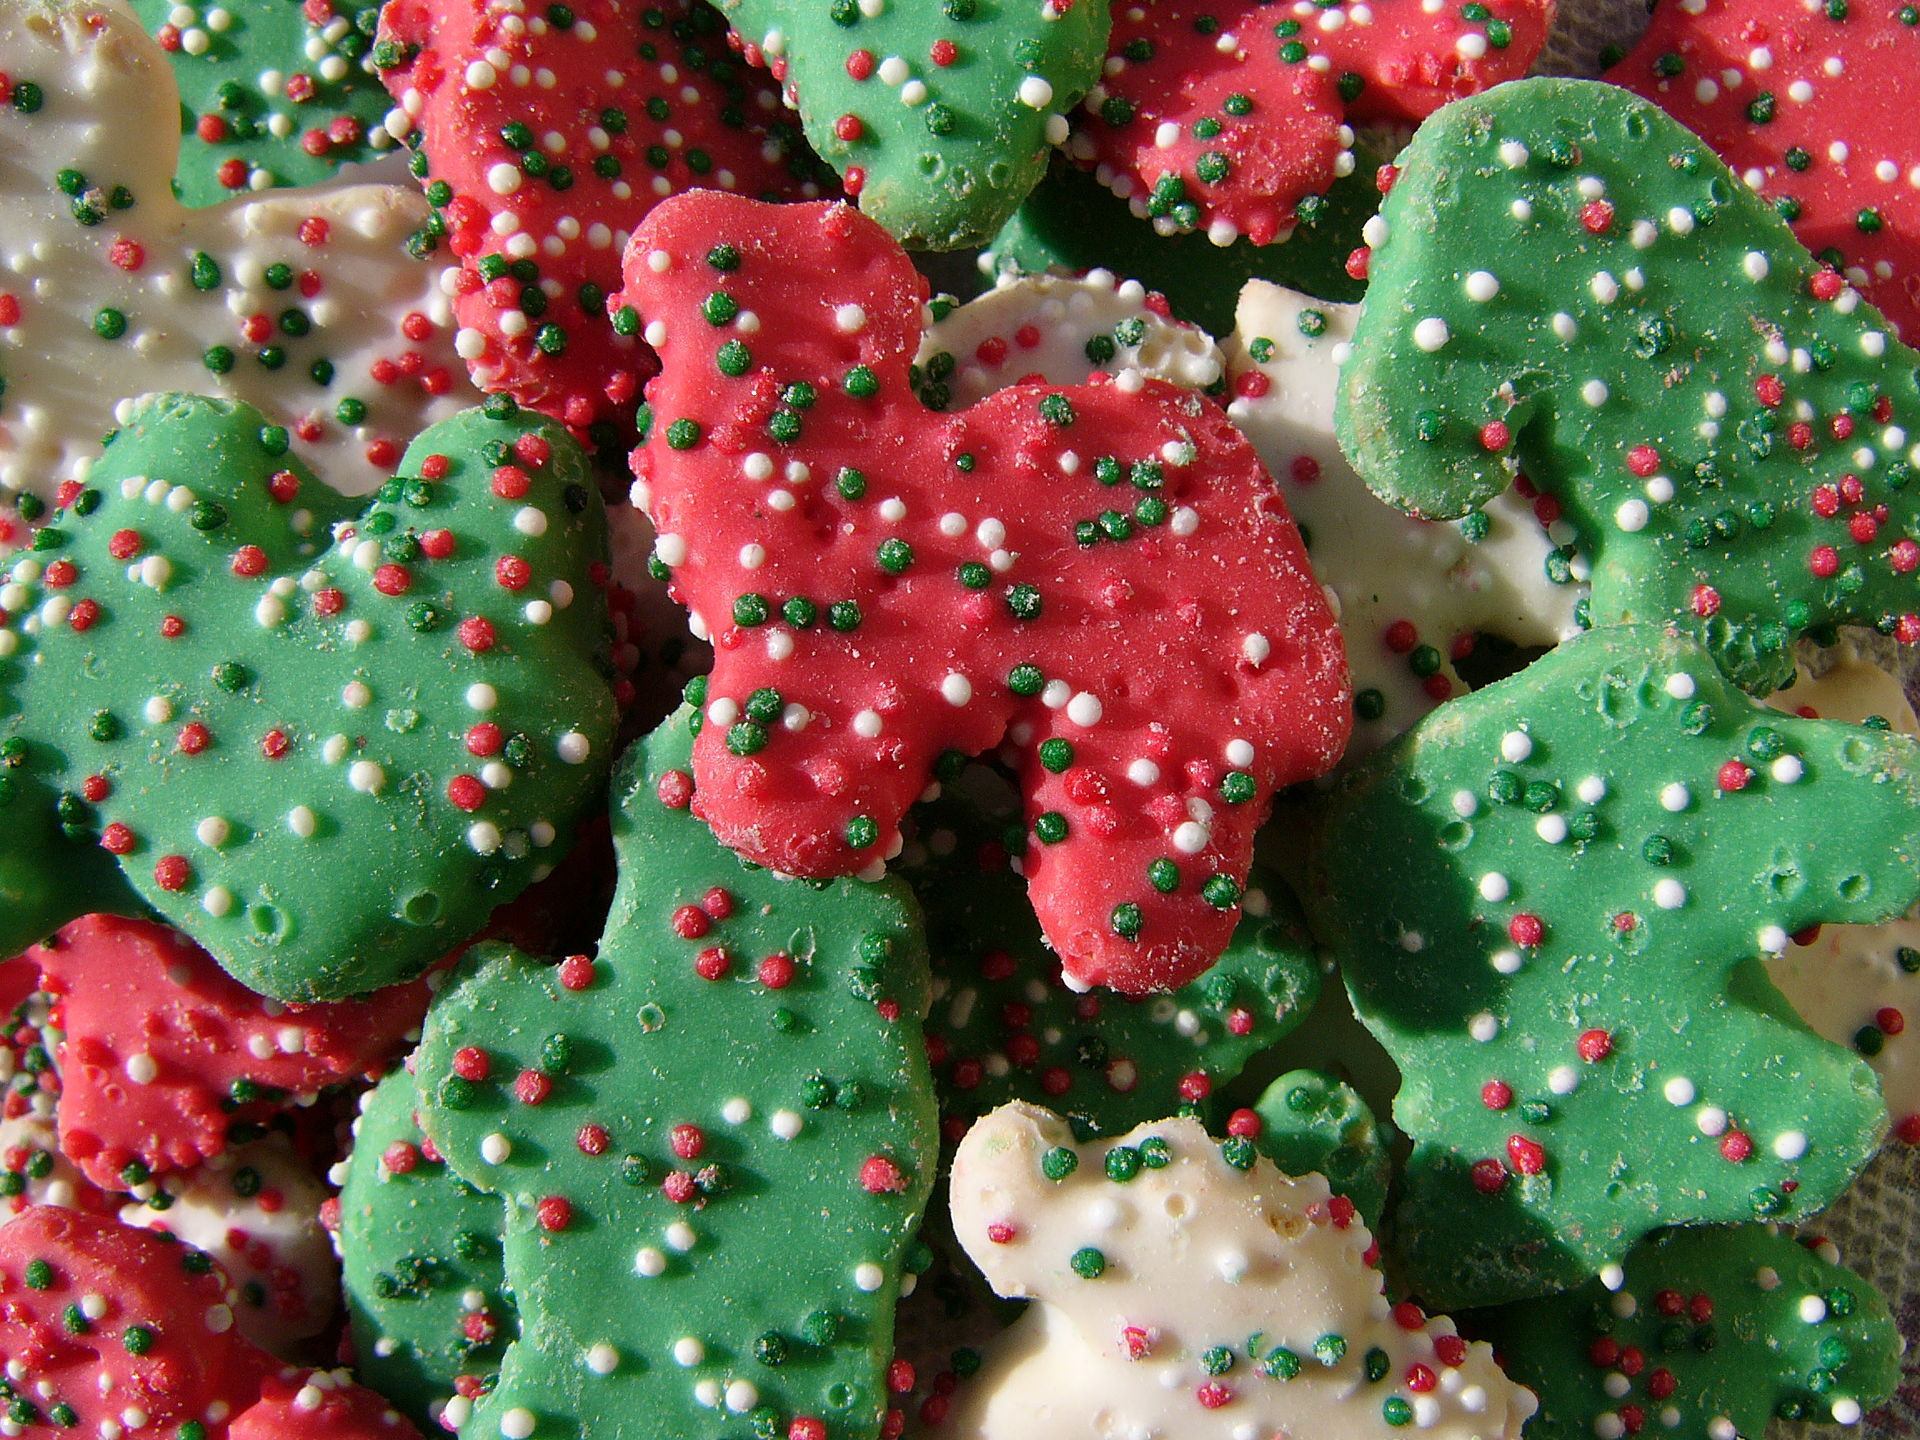 Store Bought Christmas Cookies  [TOMT] [Food] Store bought Christmas cookies from 1980s